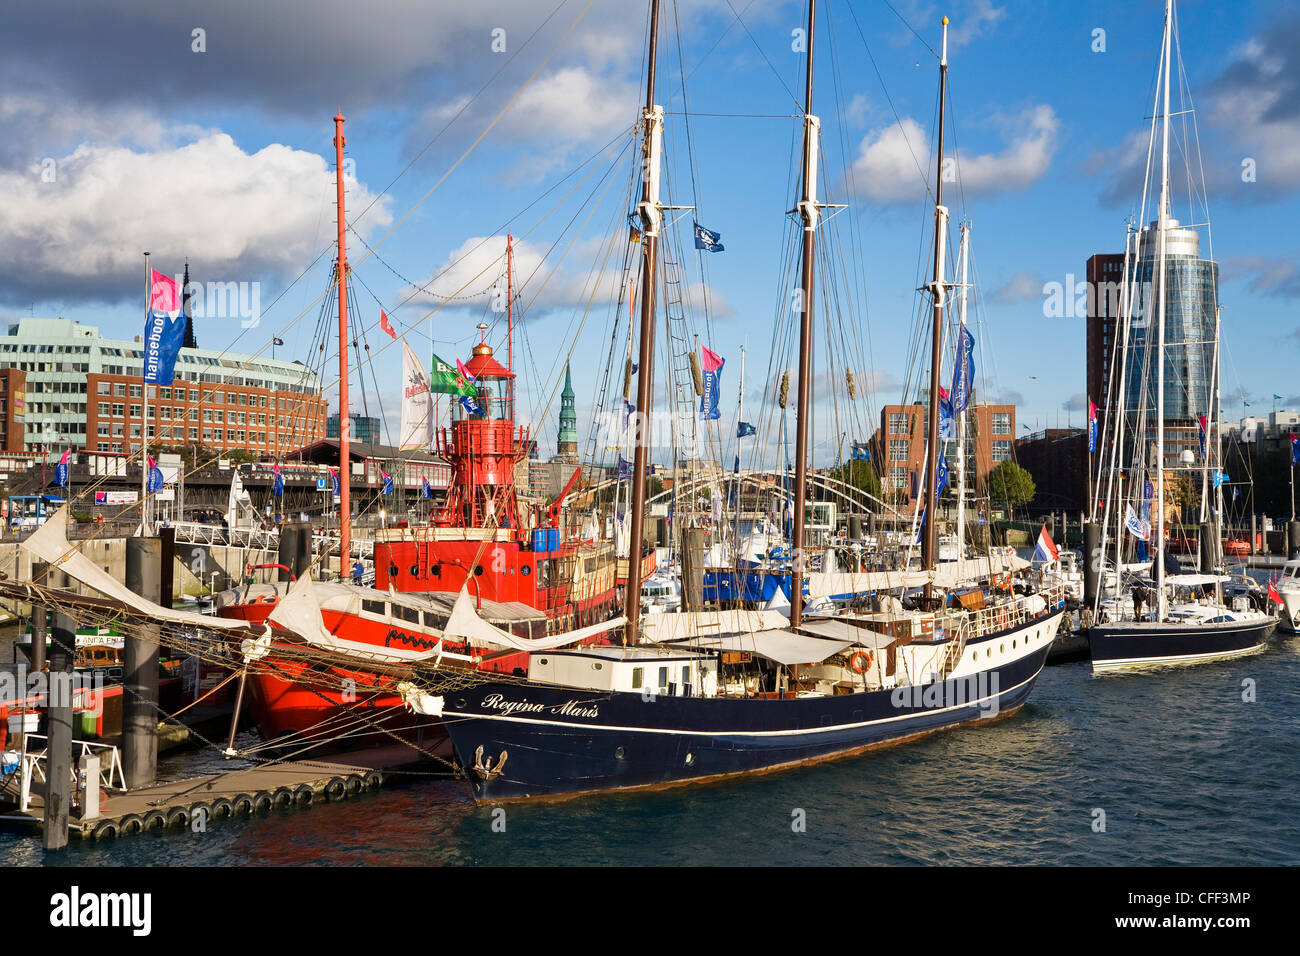 Fire ship at harbour in front of Hanseatic Trade Center, Hanseatic citiy of Hamburg, Germany, Europe - Stock Image